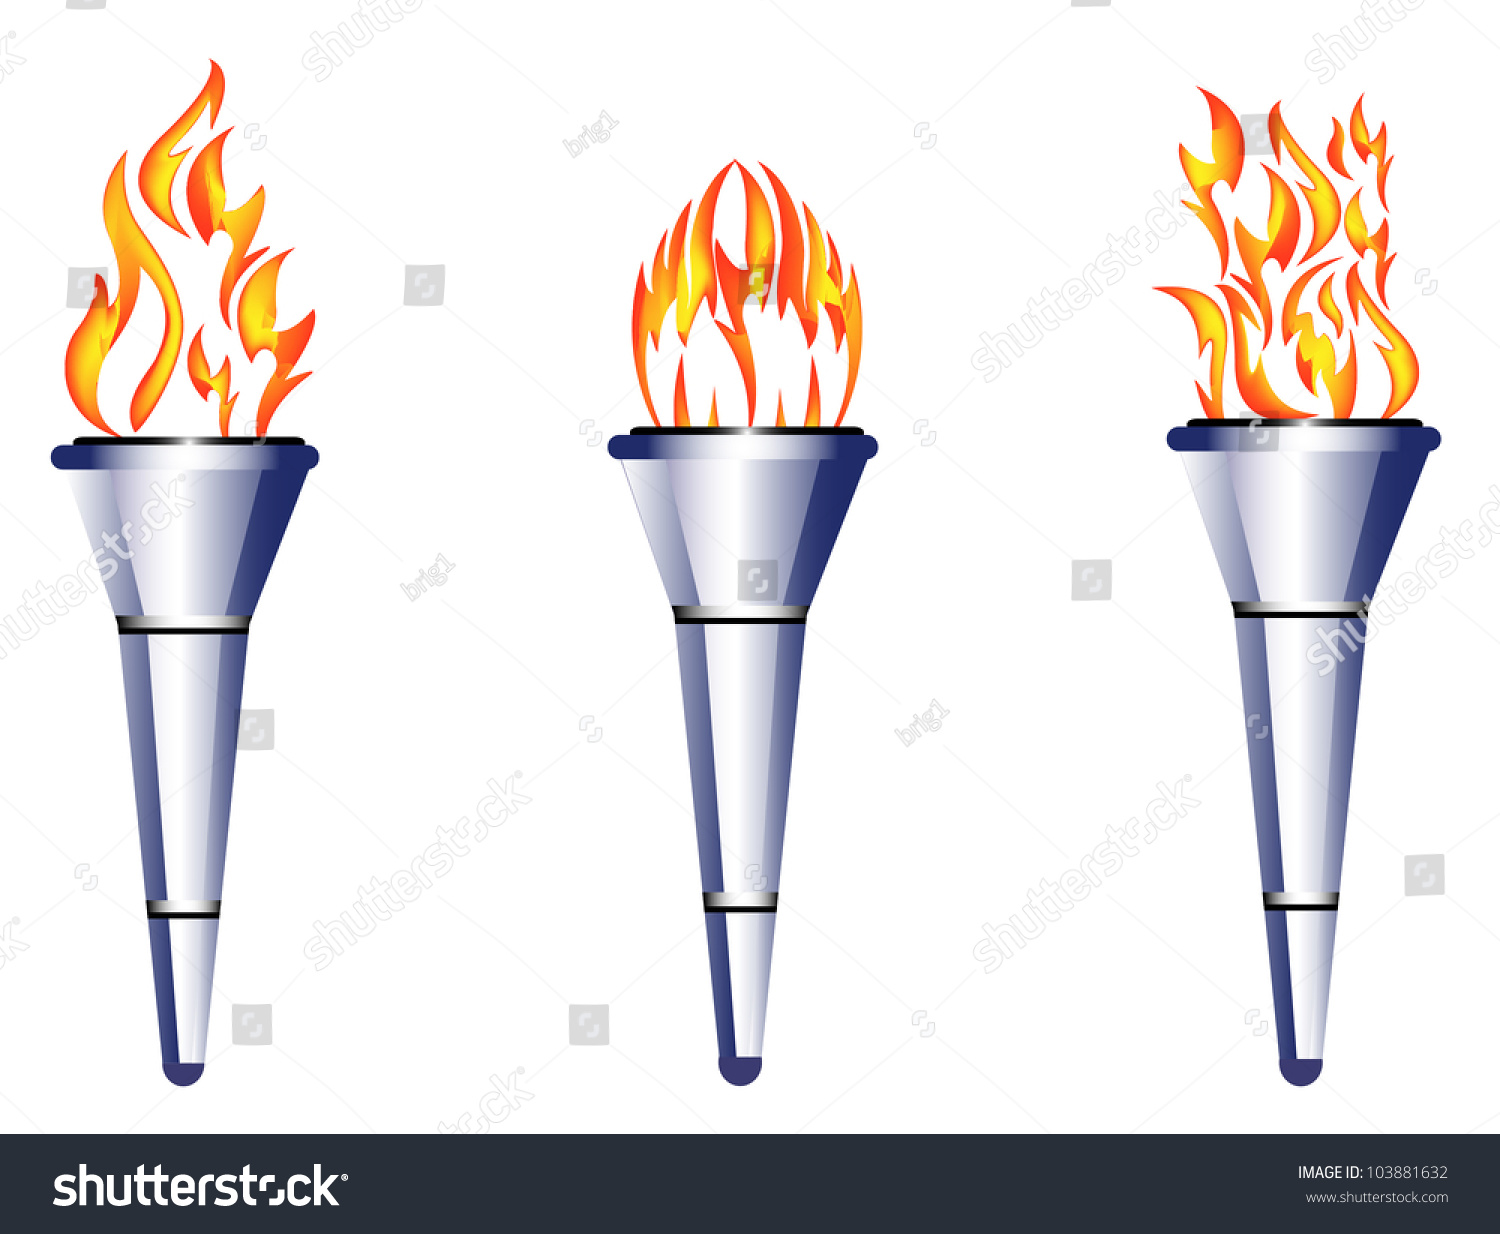 Torch, Flame, Fire Stock Vector Illustration 103881632